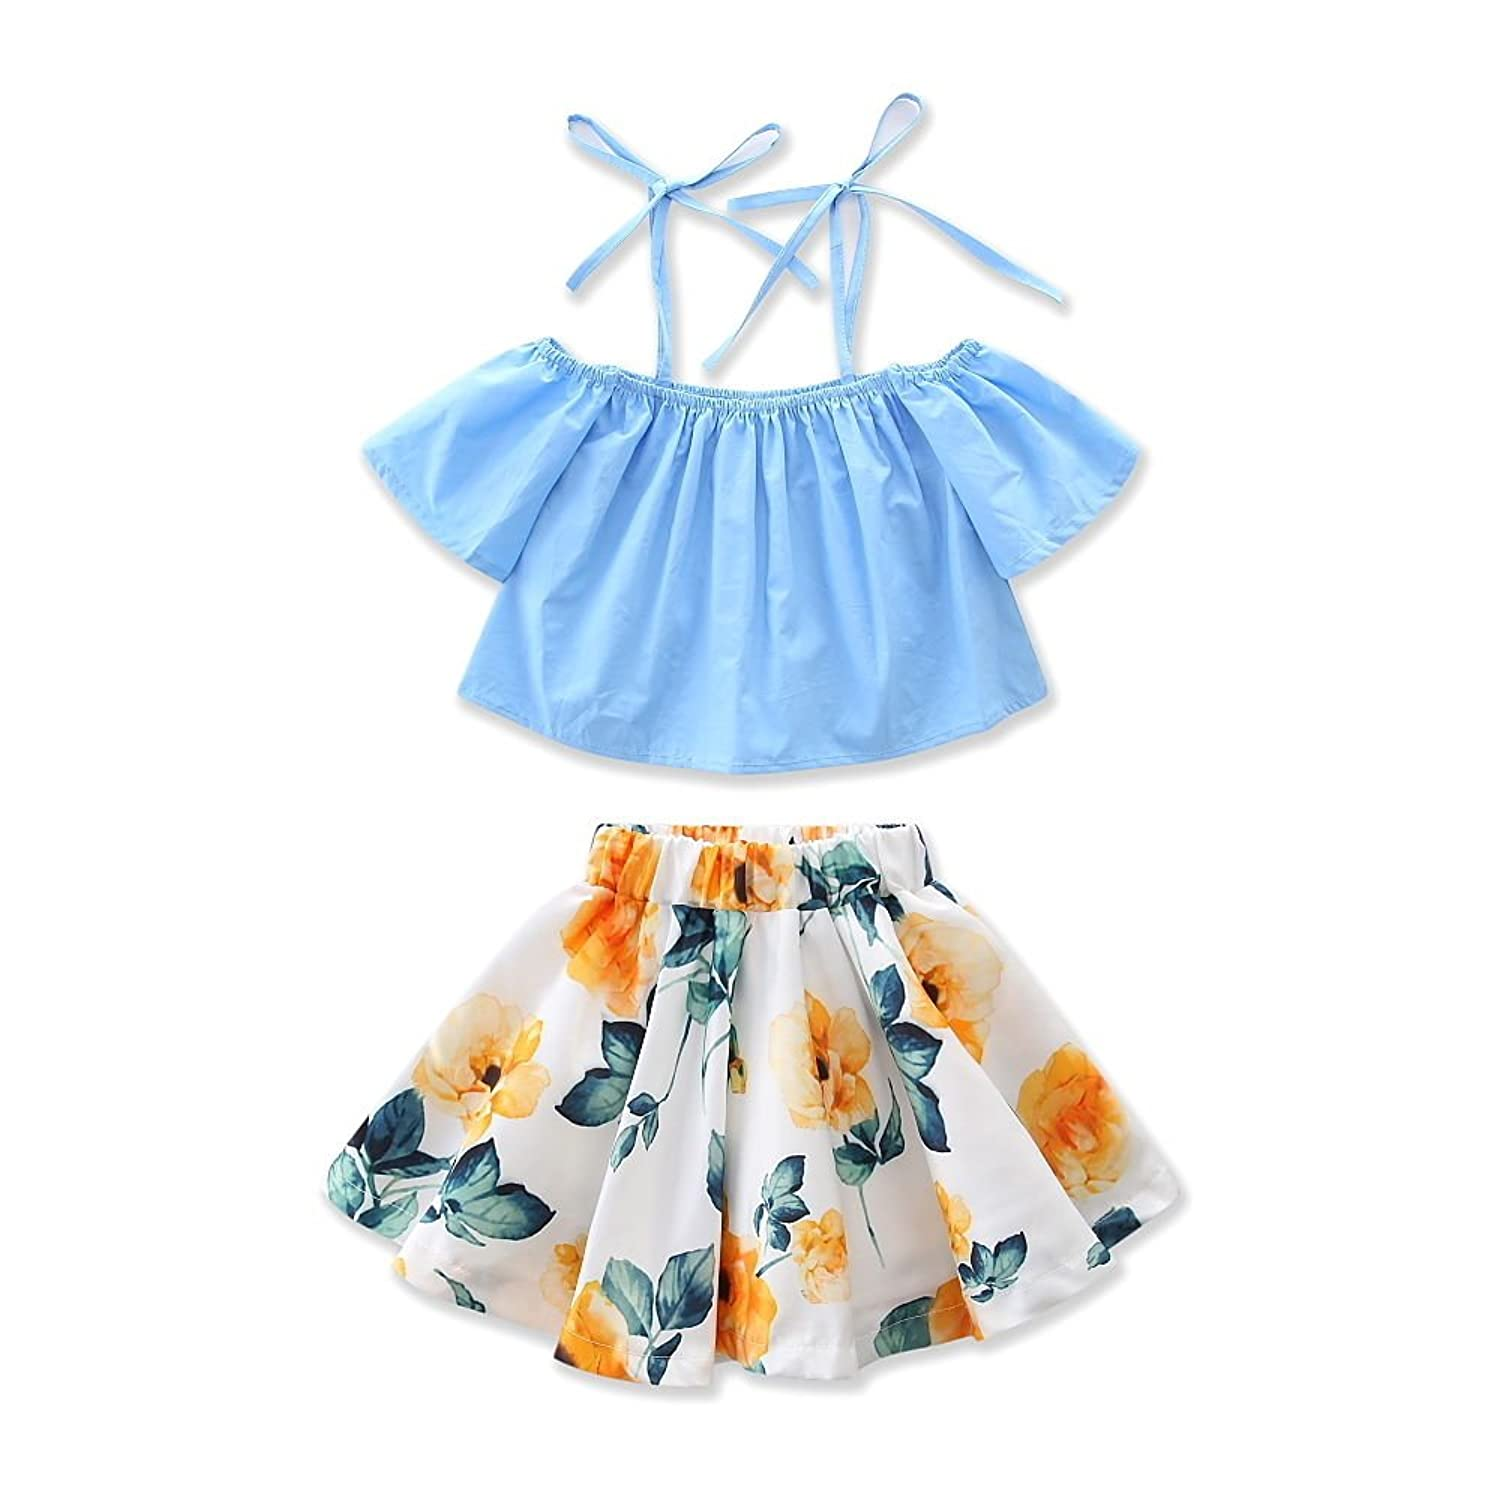 ABEE Little Girls' Clothes Off Shoulder Tops + Floral Skirt 2pcs Outfits Set